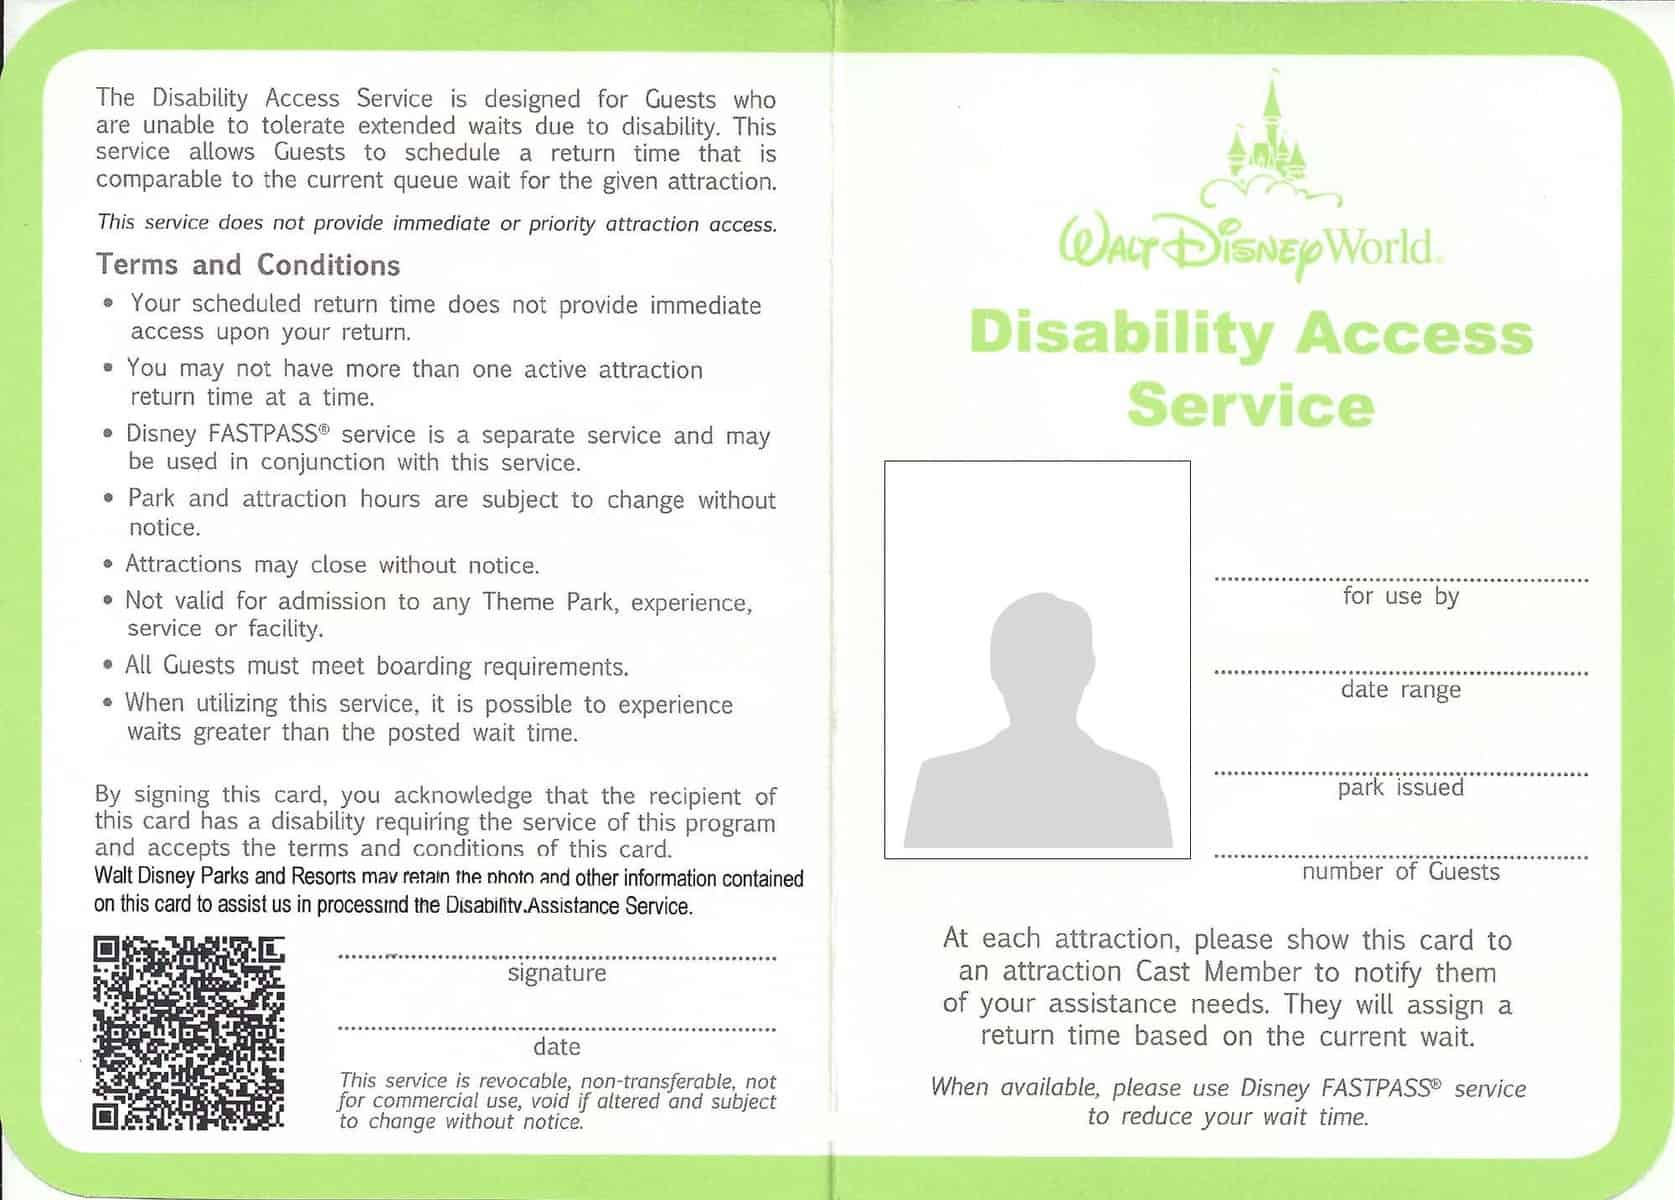 disabilityaccesscard - Taking a child on the autism spectrum to Disney World